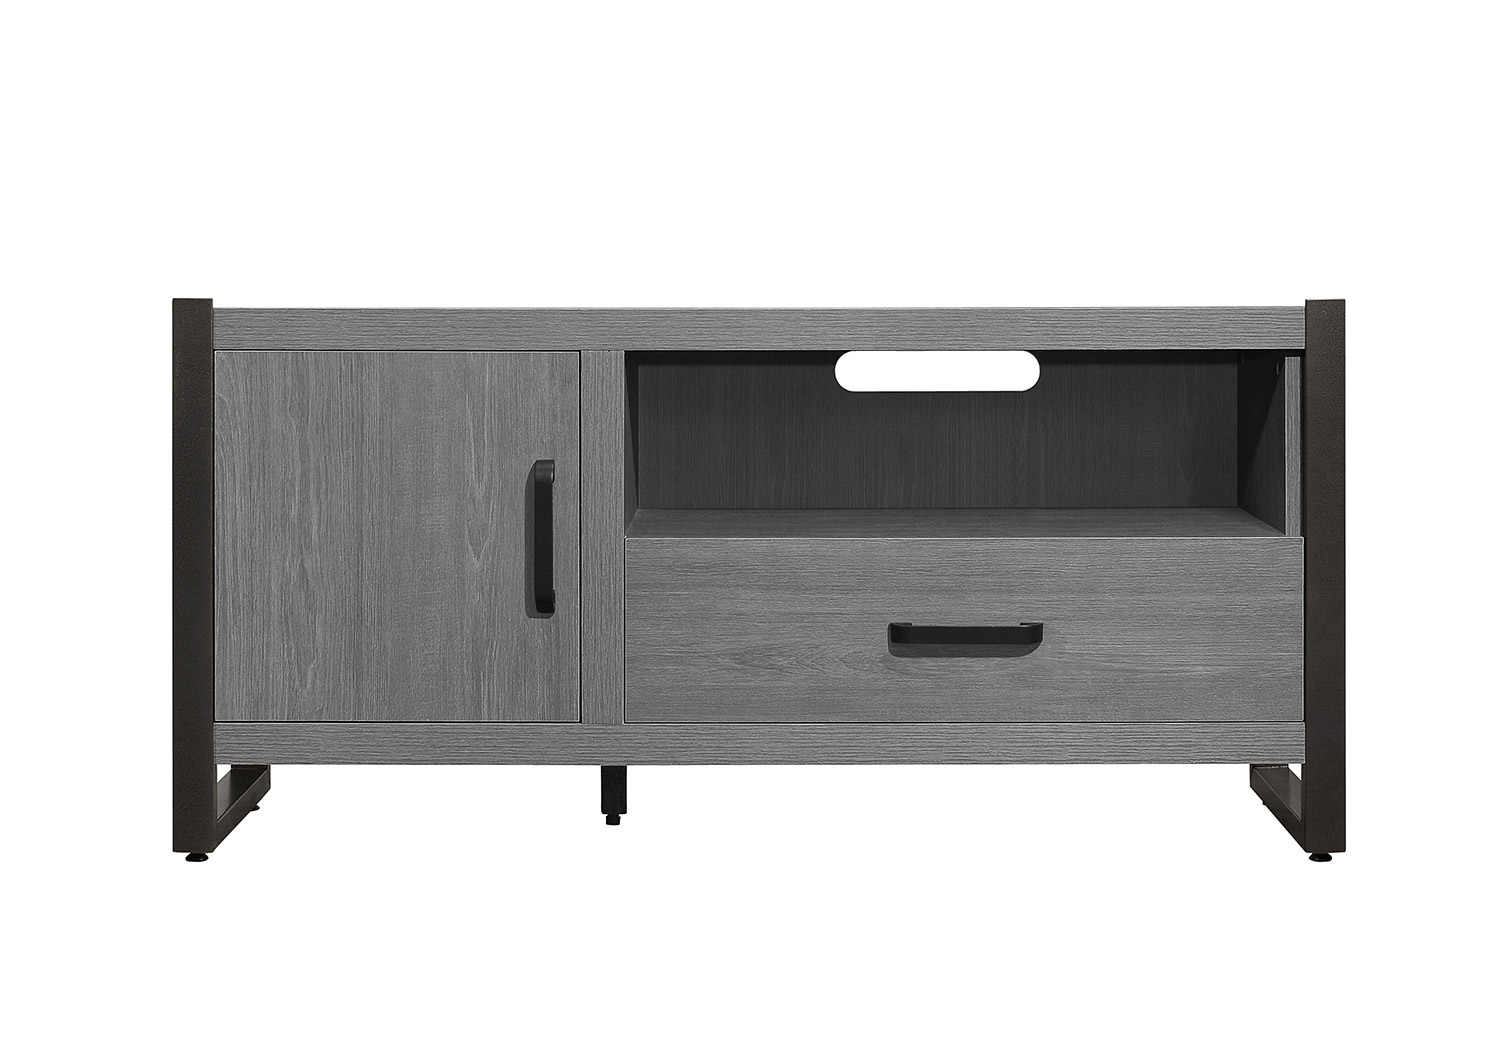 Homelegance Dogue 51-inch TV Stand - Gunmetal - Gray